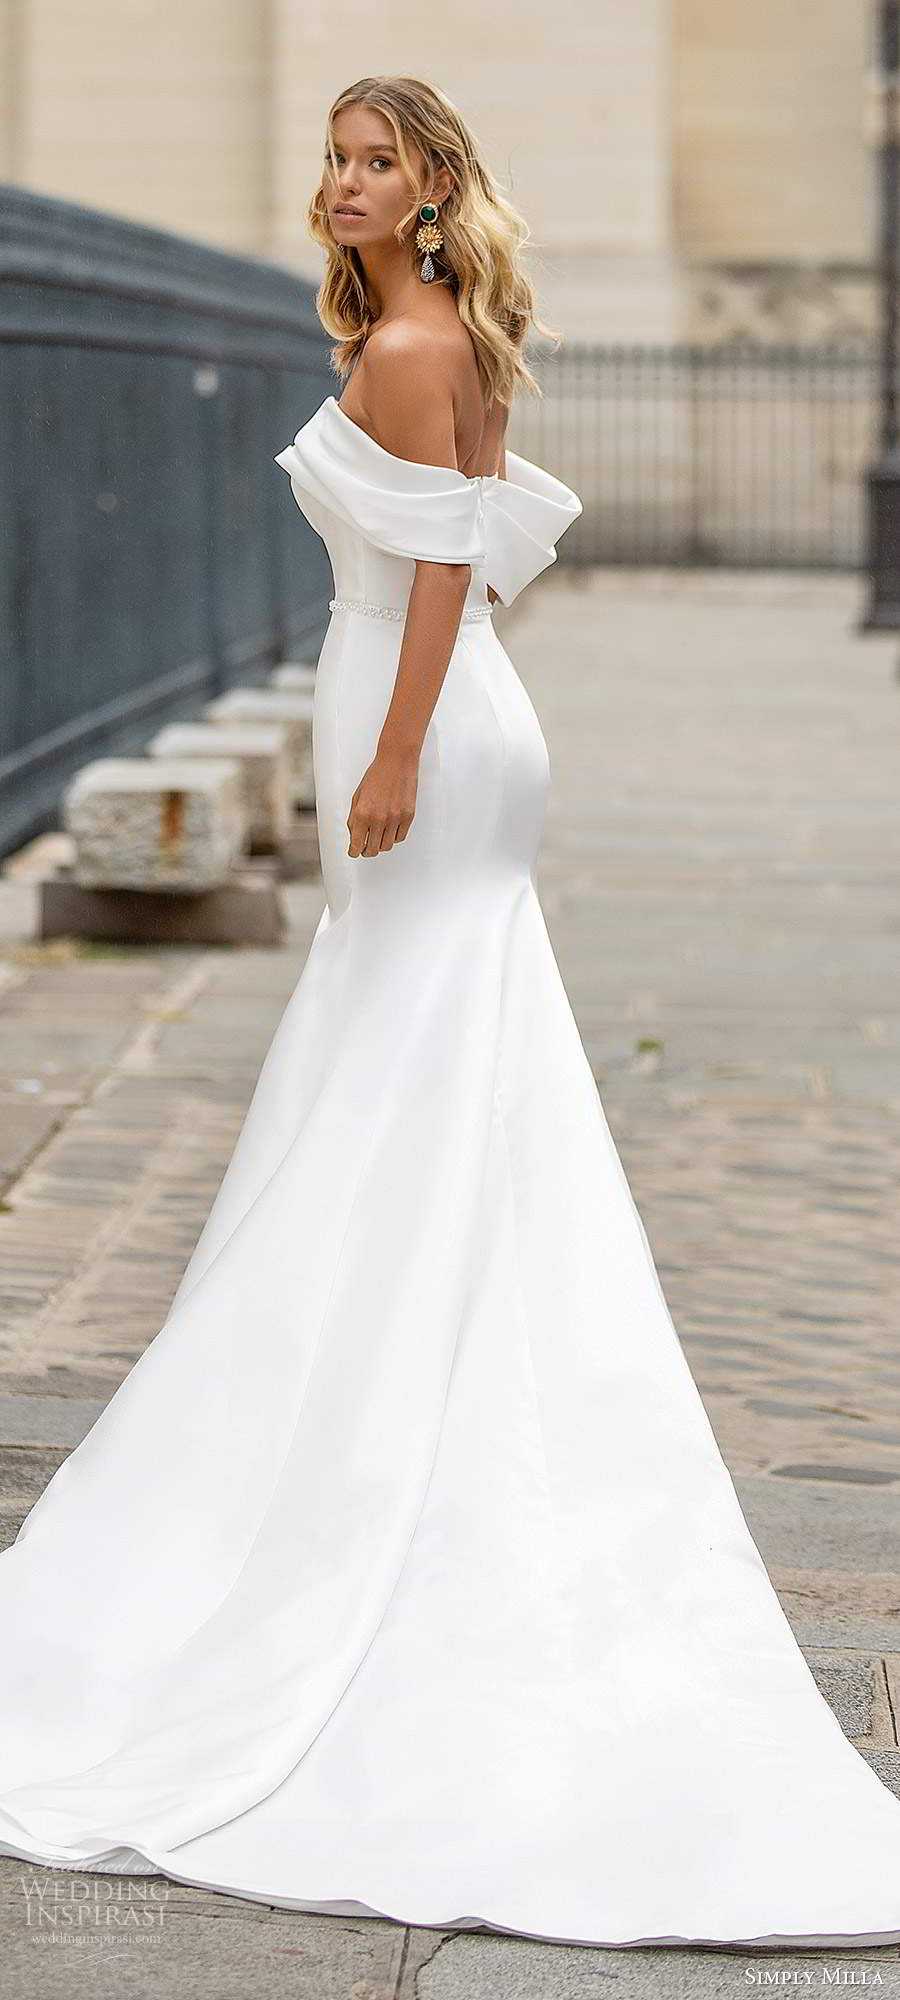 simply milla nova 2020 bridal off shoulder straps straight across foldover neckline clean minimally embellished fit flare mermaid wedding dress chapel train (17) bv